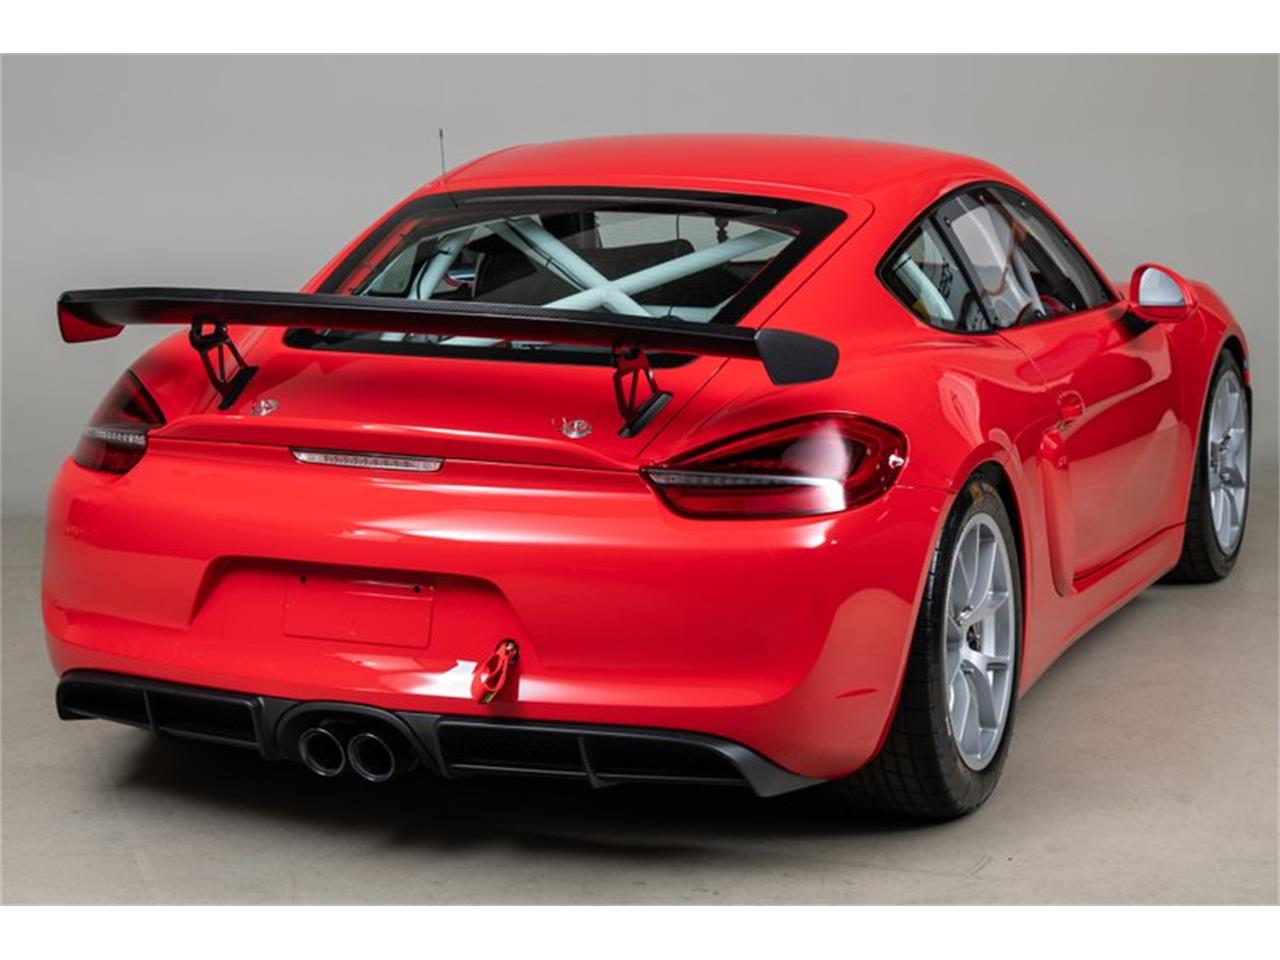 Large Picture of '16 Porsche Cayman located in Scotts Valley California Auction Vehicle - PX7K